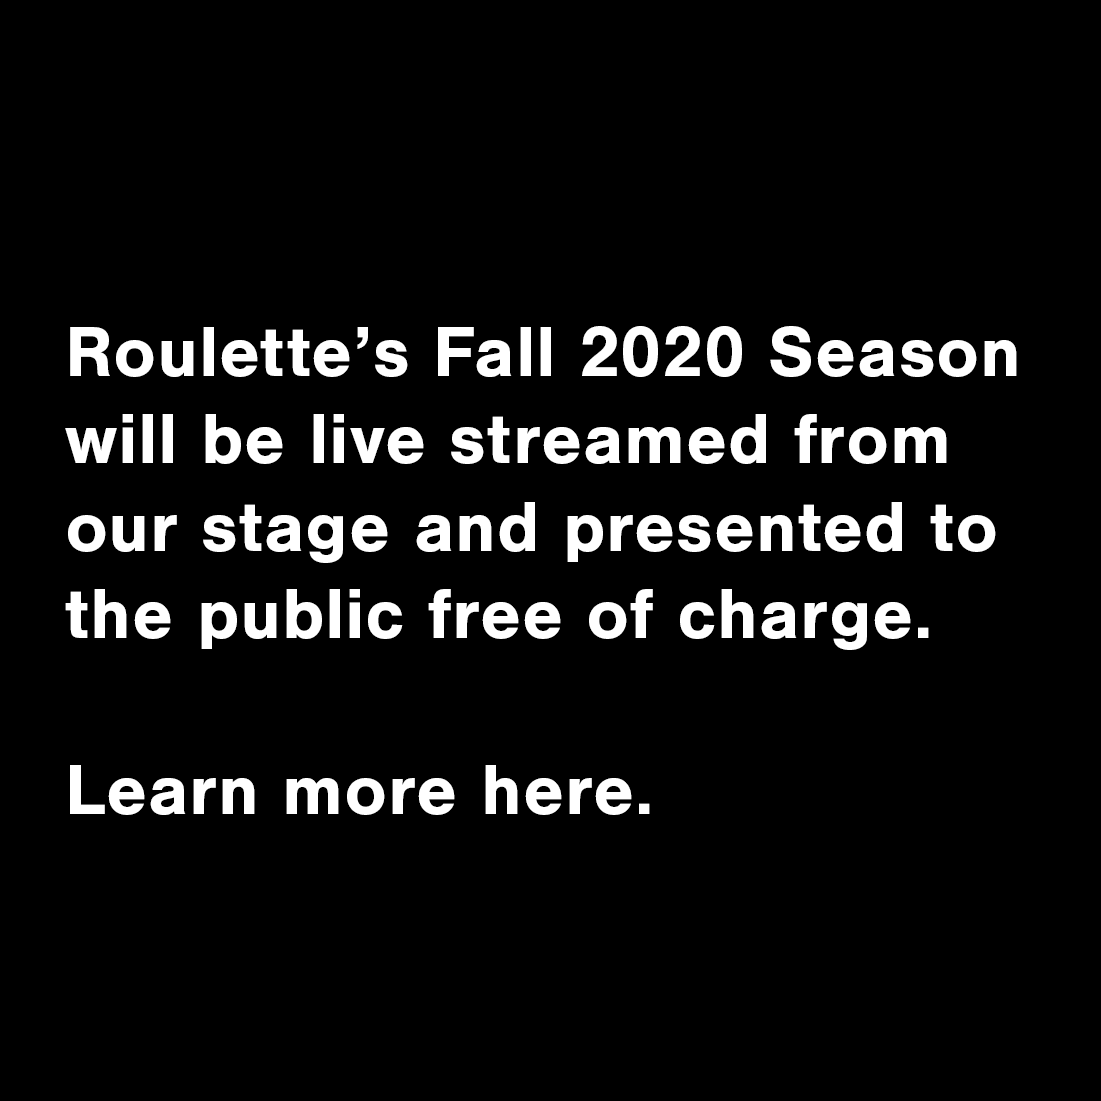 Roulette's Fall 2020 Season will be livestreamed from our stage and presented to the public free of charge. Learn more here.